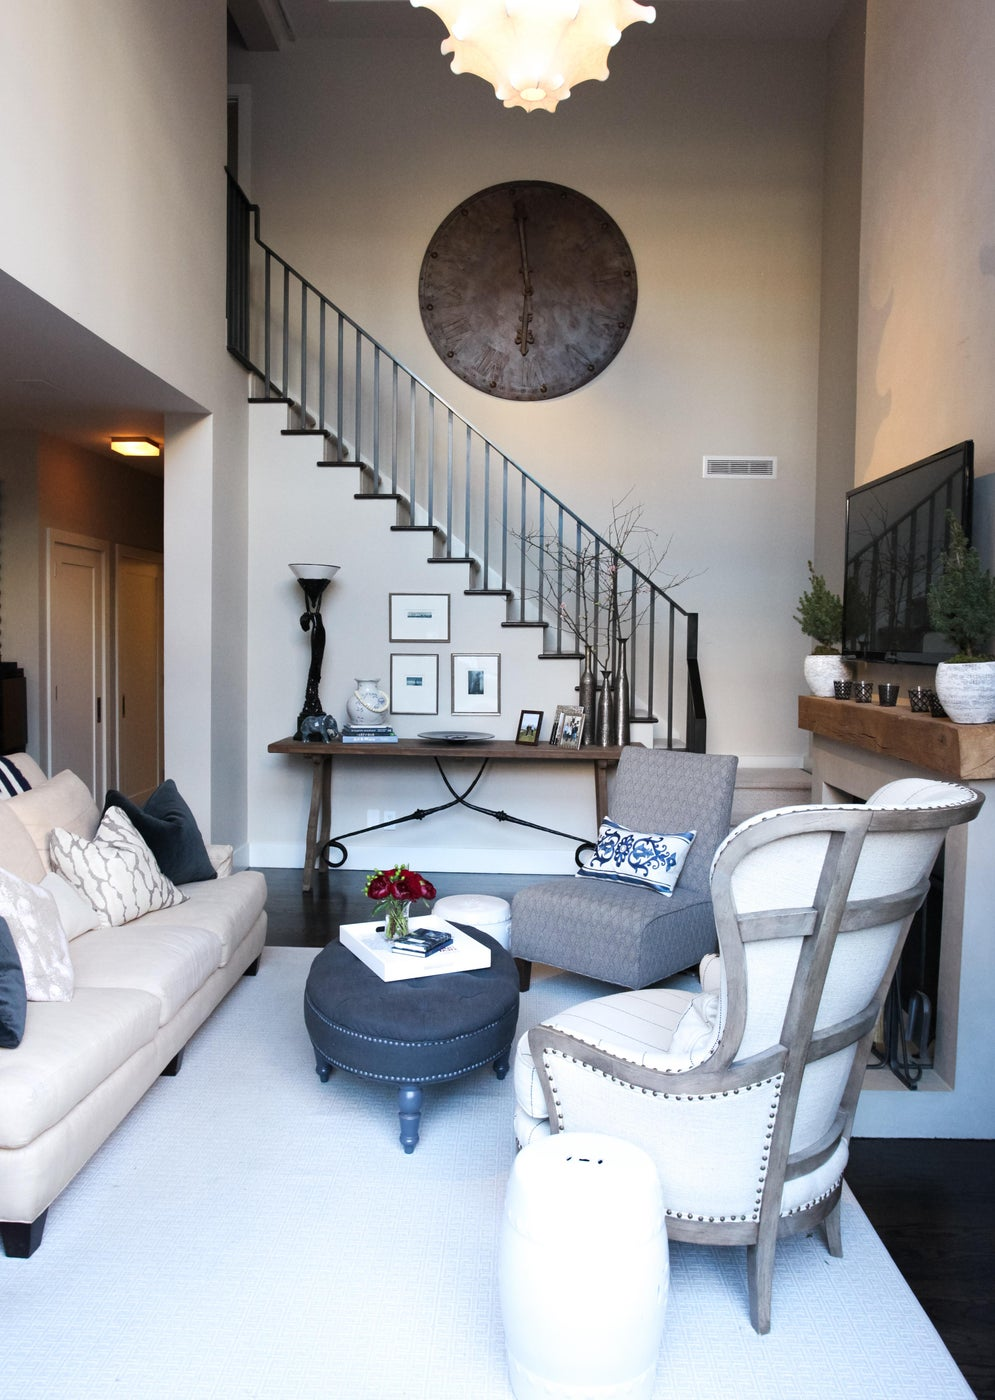 West Side Duplex Living Room with modern architectural details